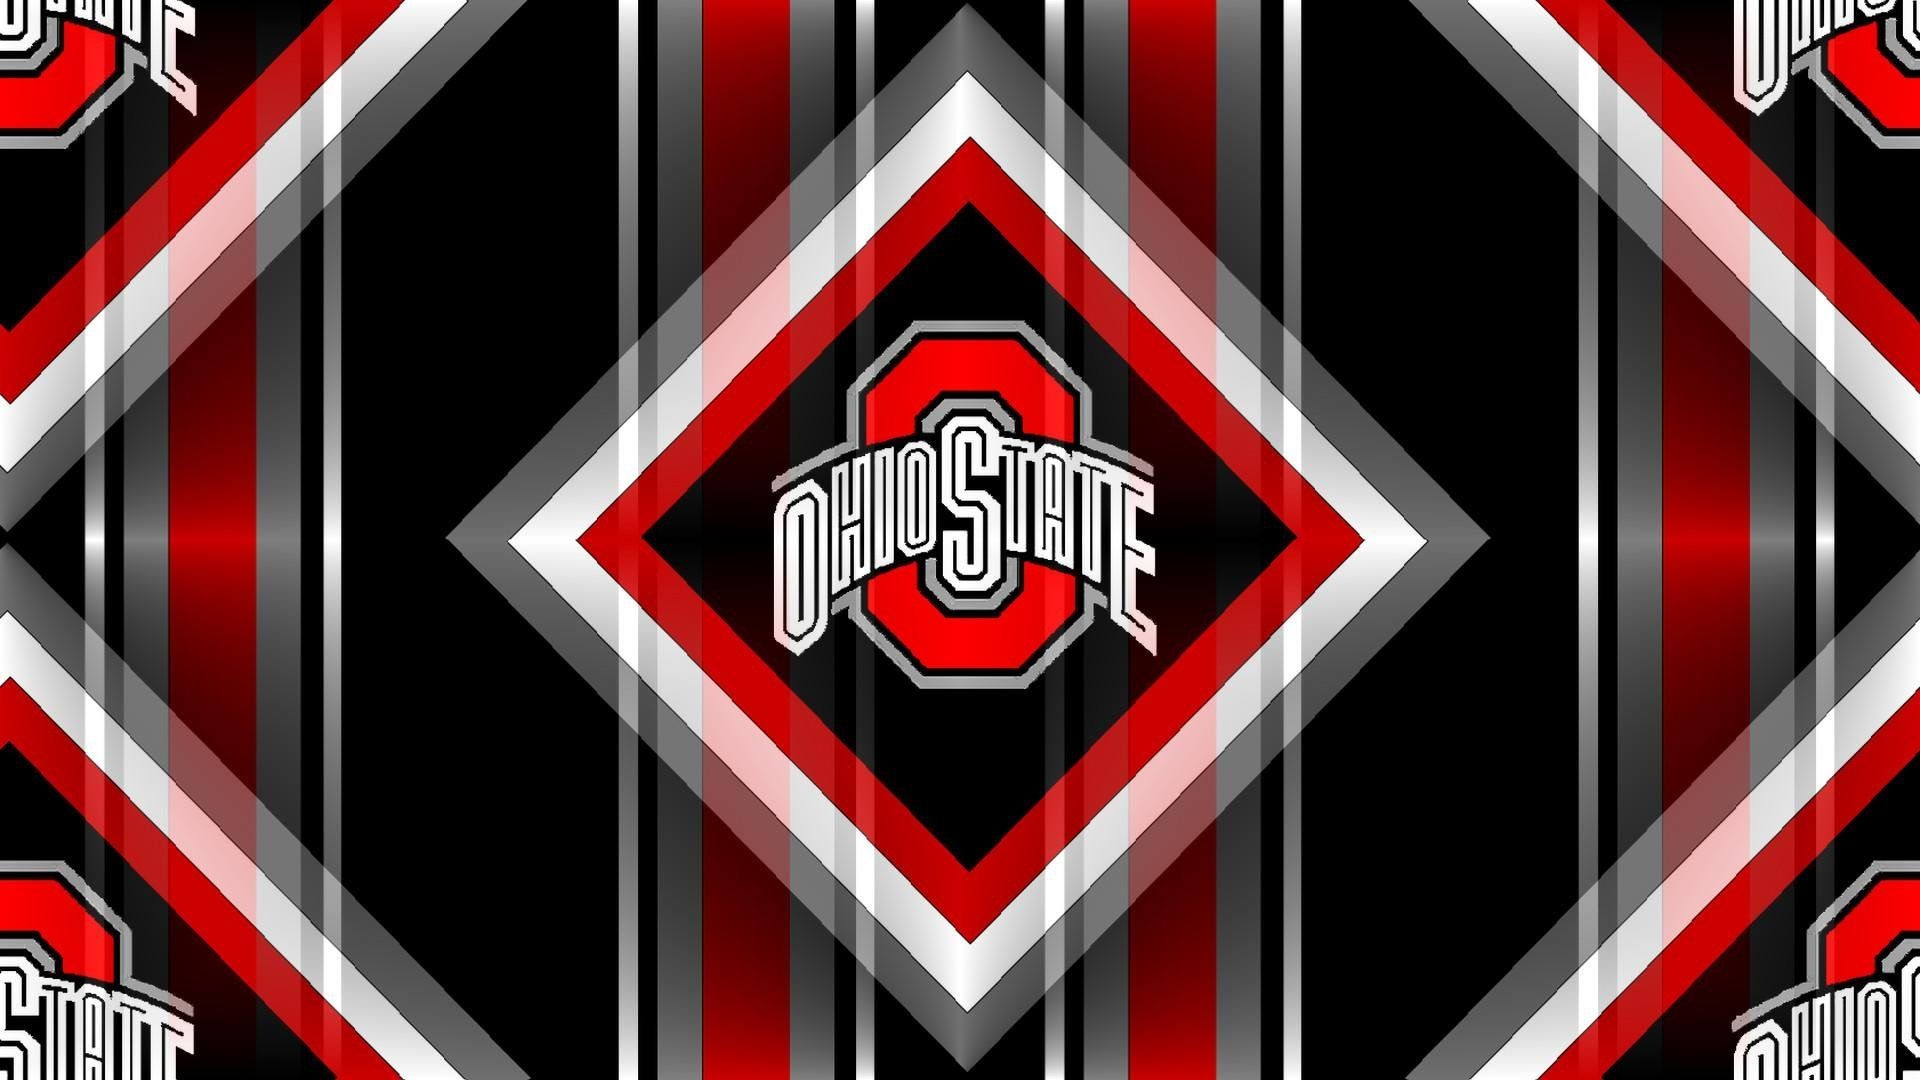 1920x1080 Ohio State Football Wallpaper 1024×768 Ohio State Backgrounds (45 Wallpapers)  | Adorable Wallpapers